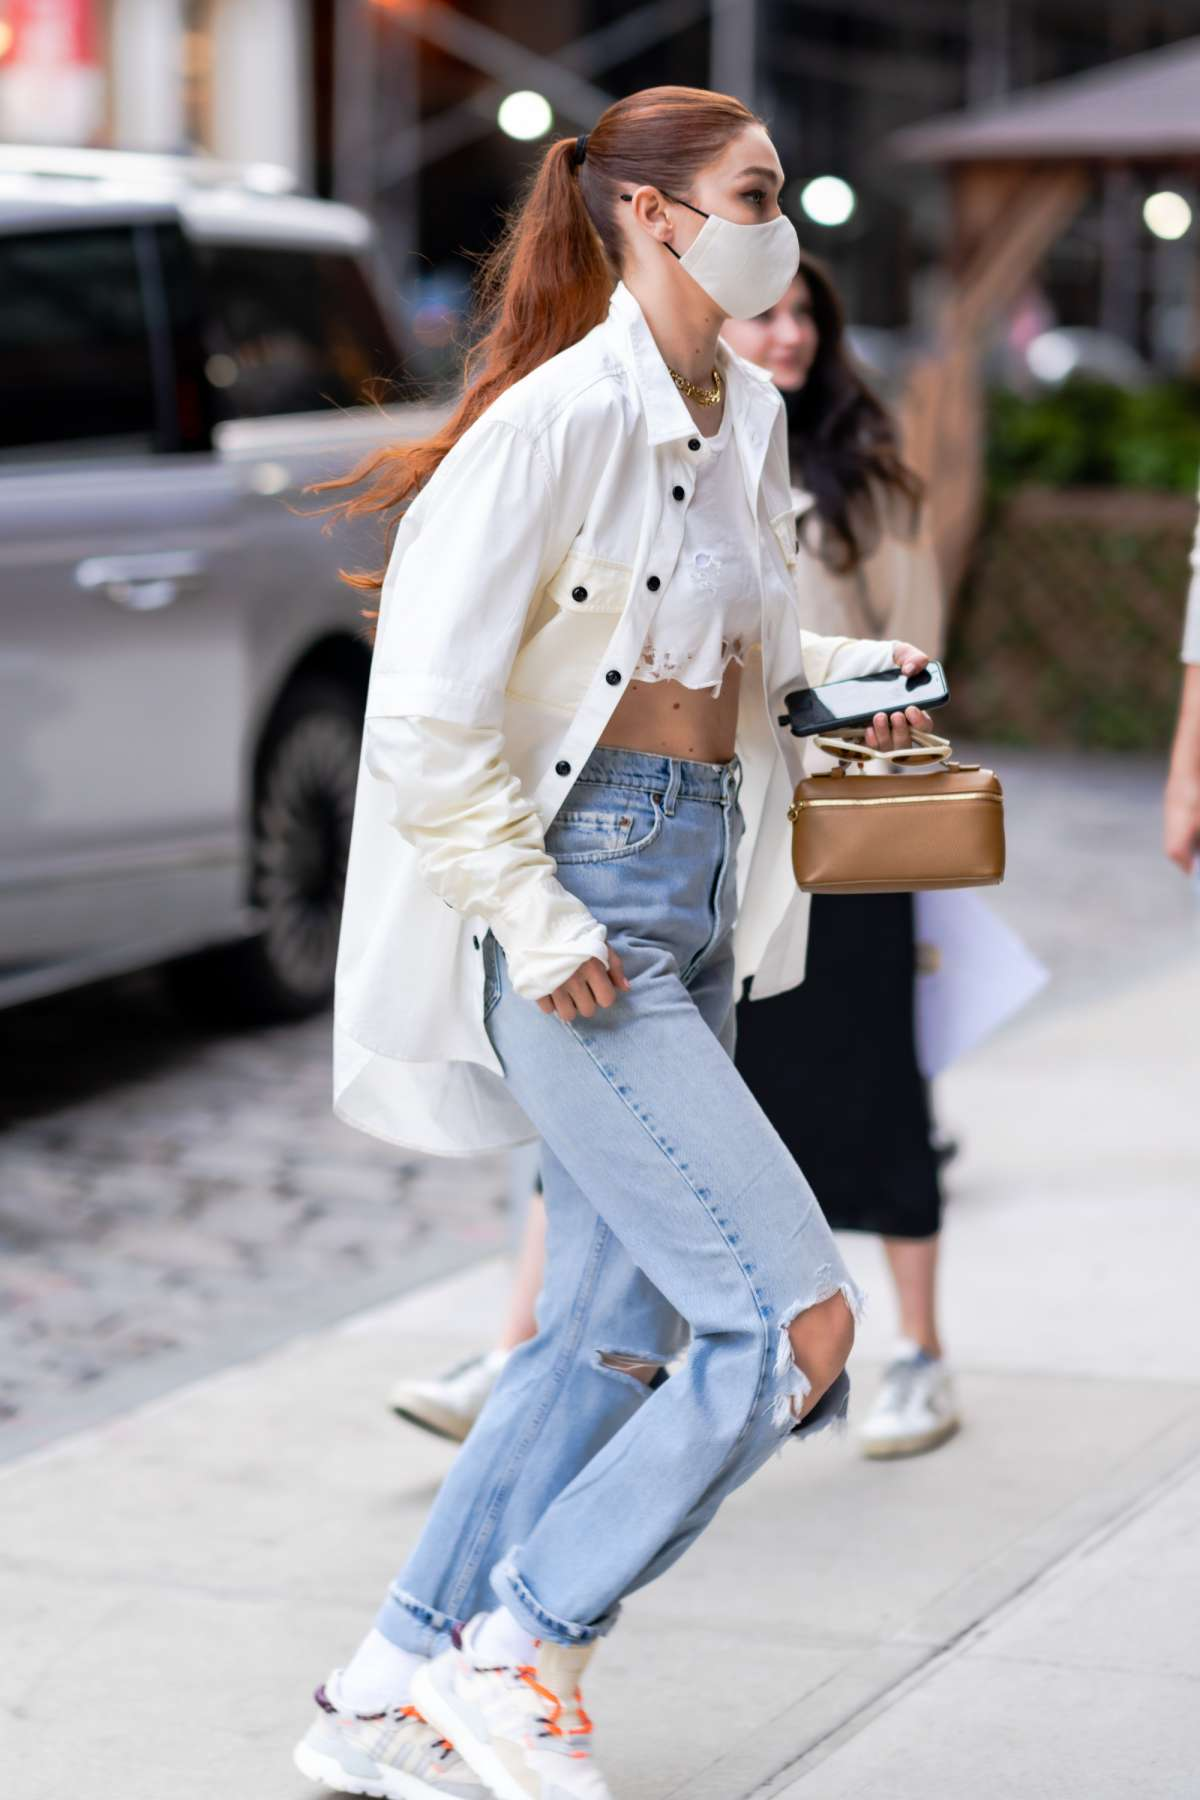 Gigi Hadid rocking round white orange lace-up sneakers by Adidas with flat heel